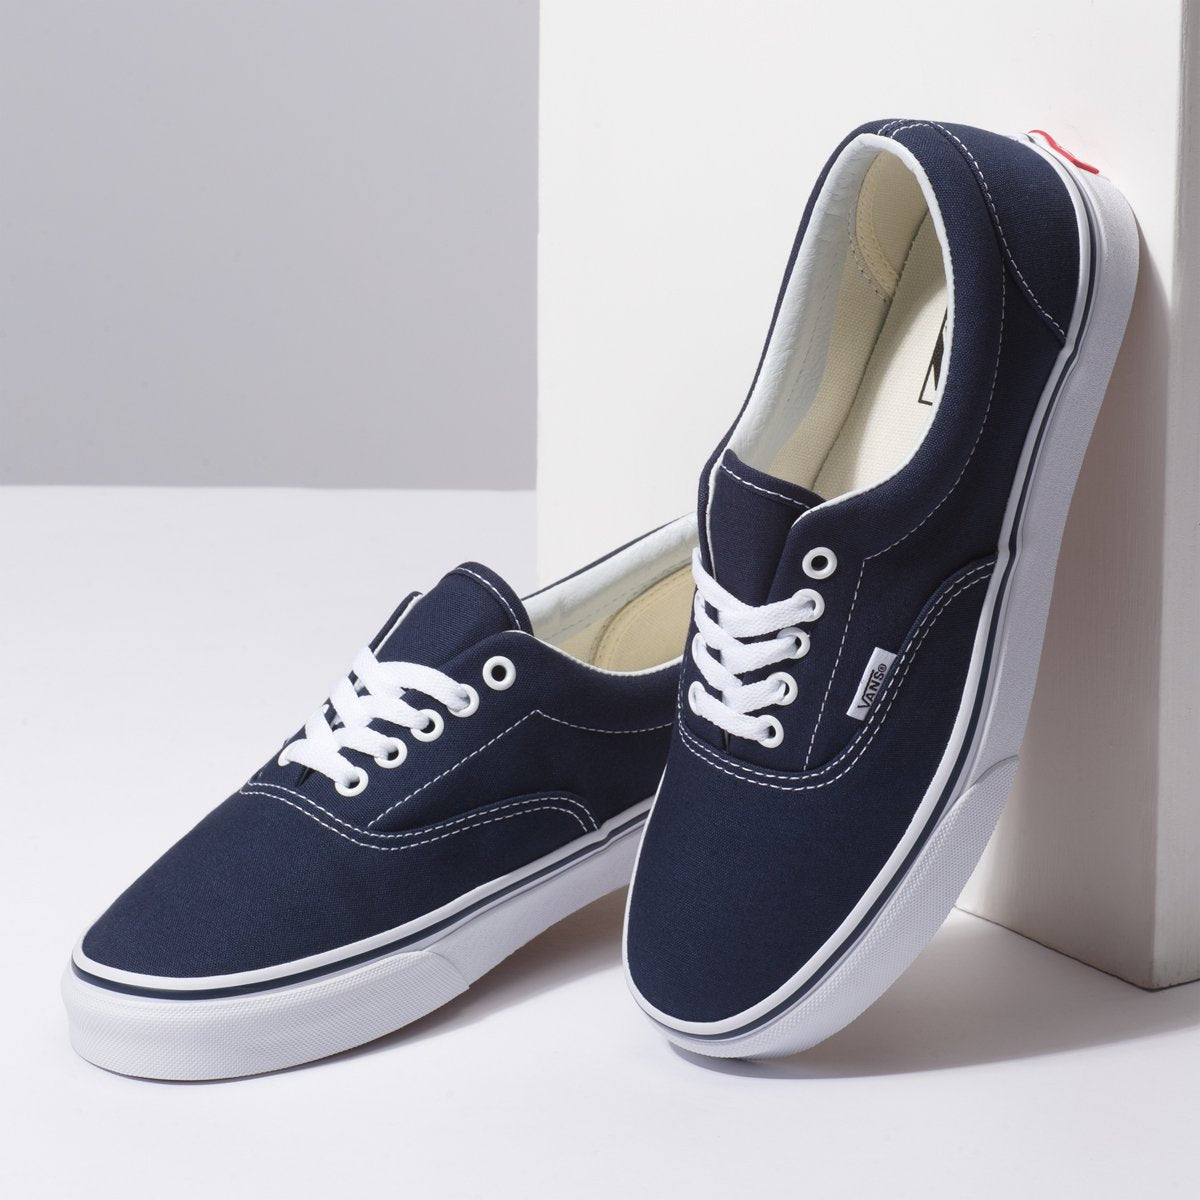 Zapatillas Vans Era - Navy - Vans